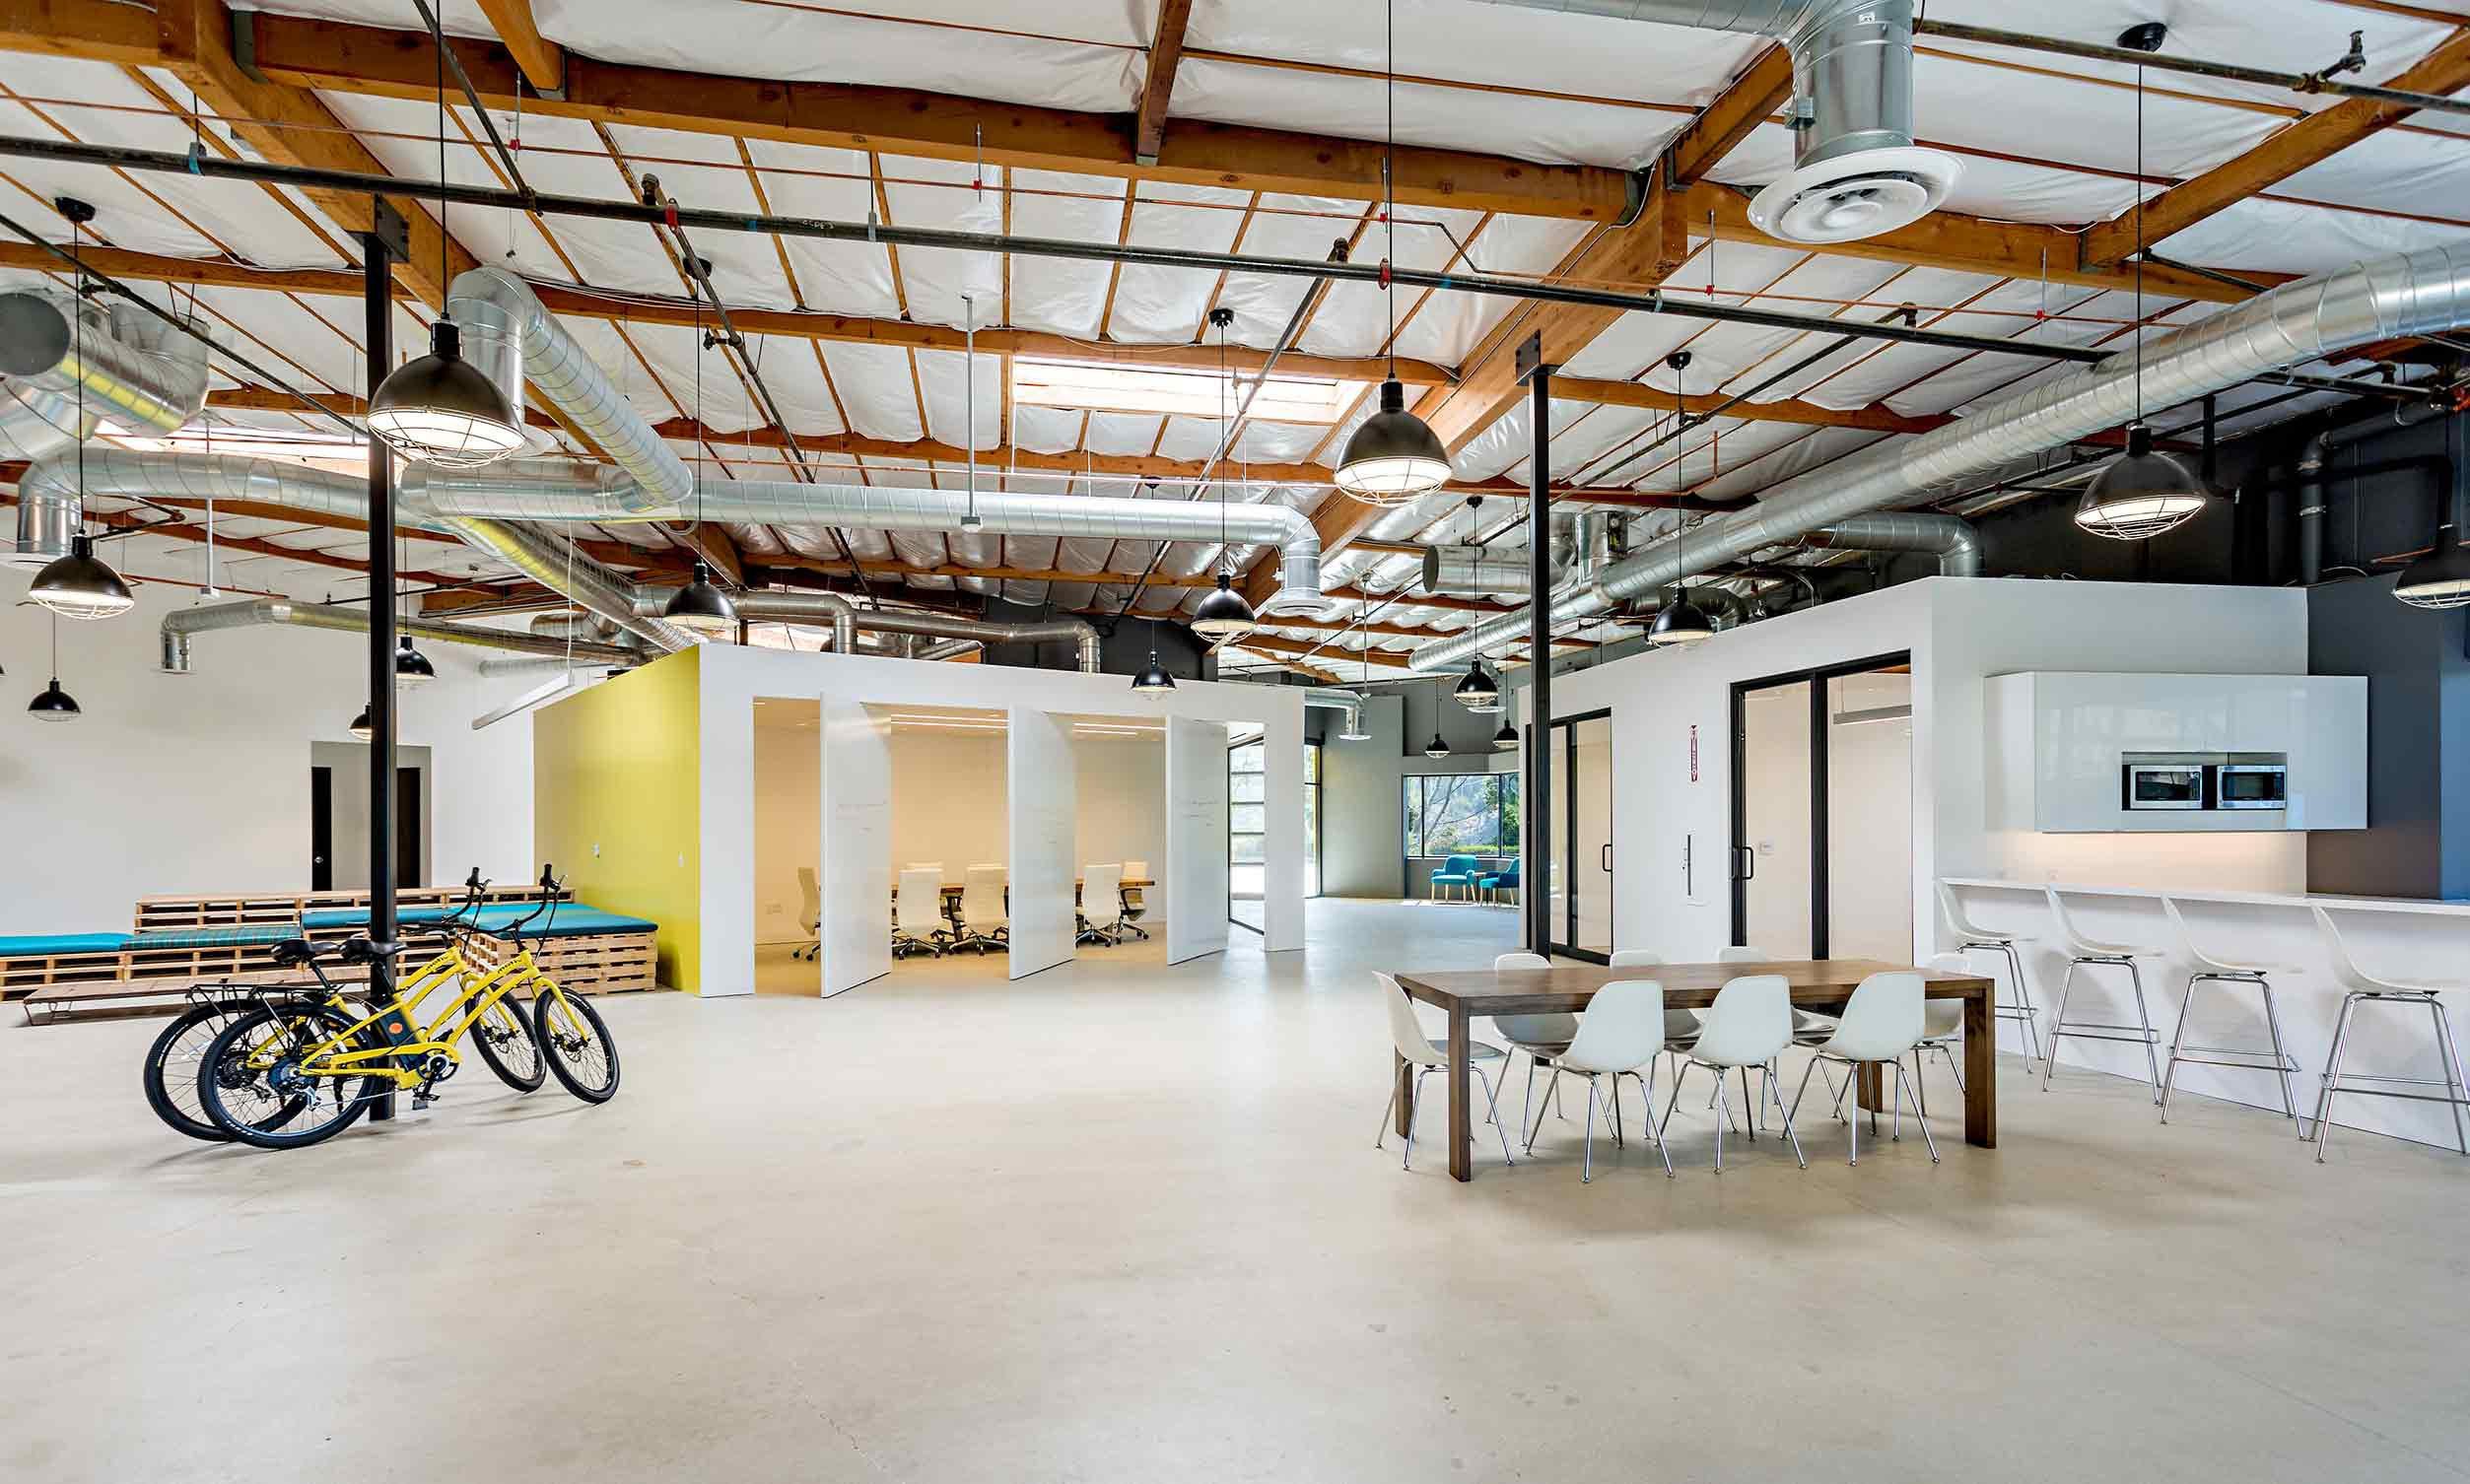 Creative Office Reception Design The Yard Rios Clementi Hale Studios